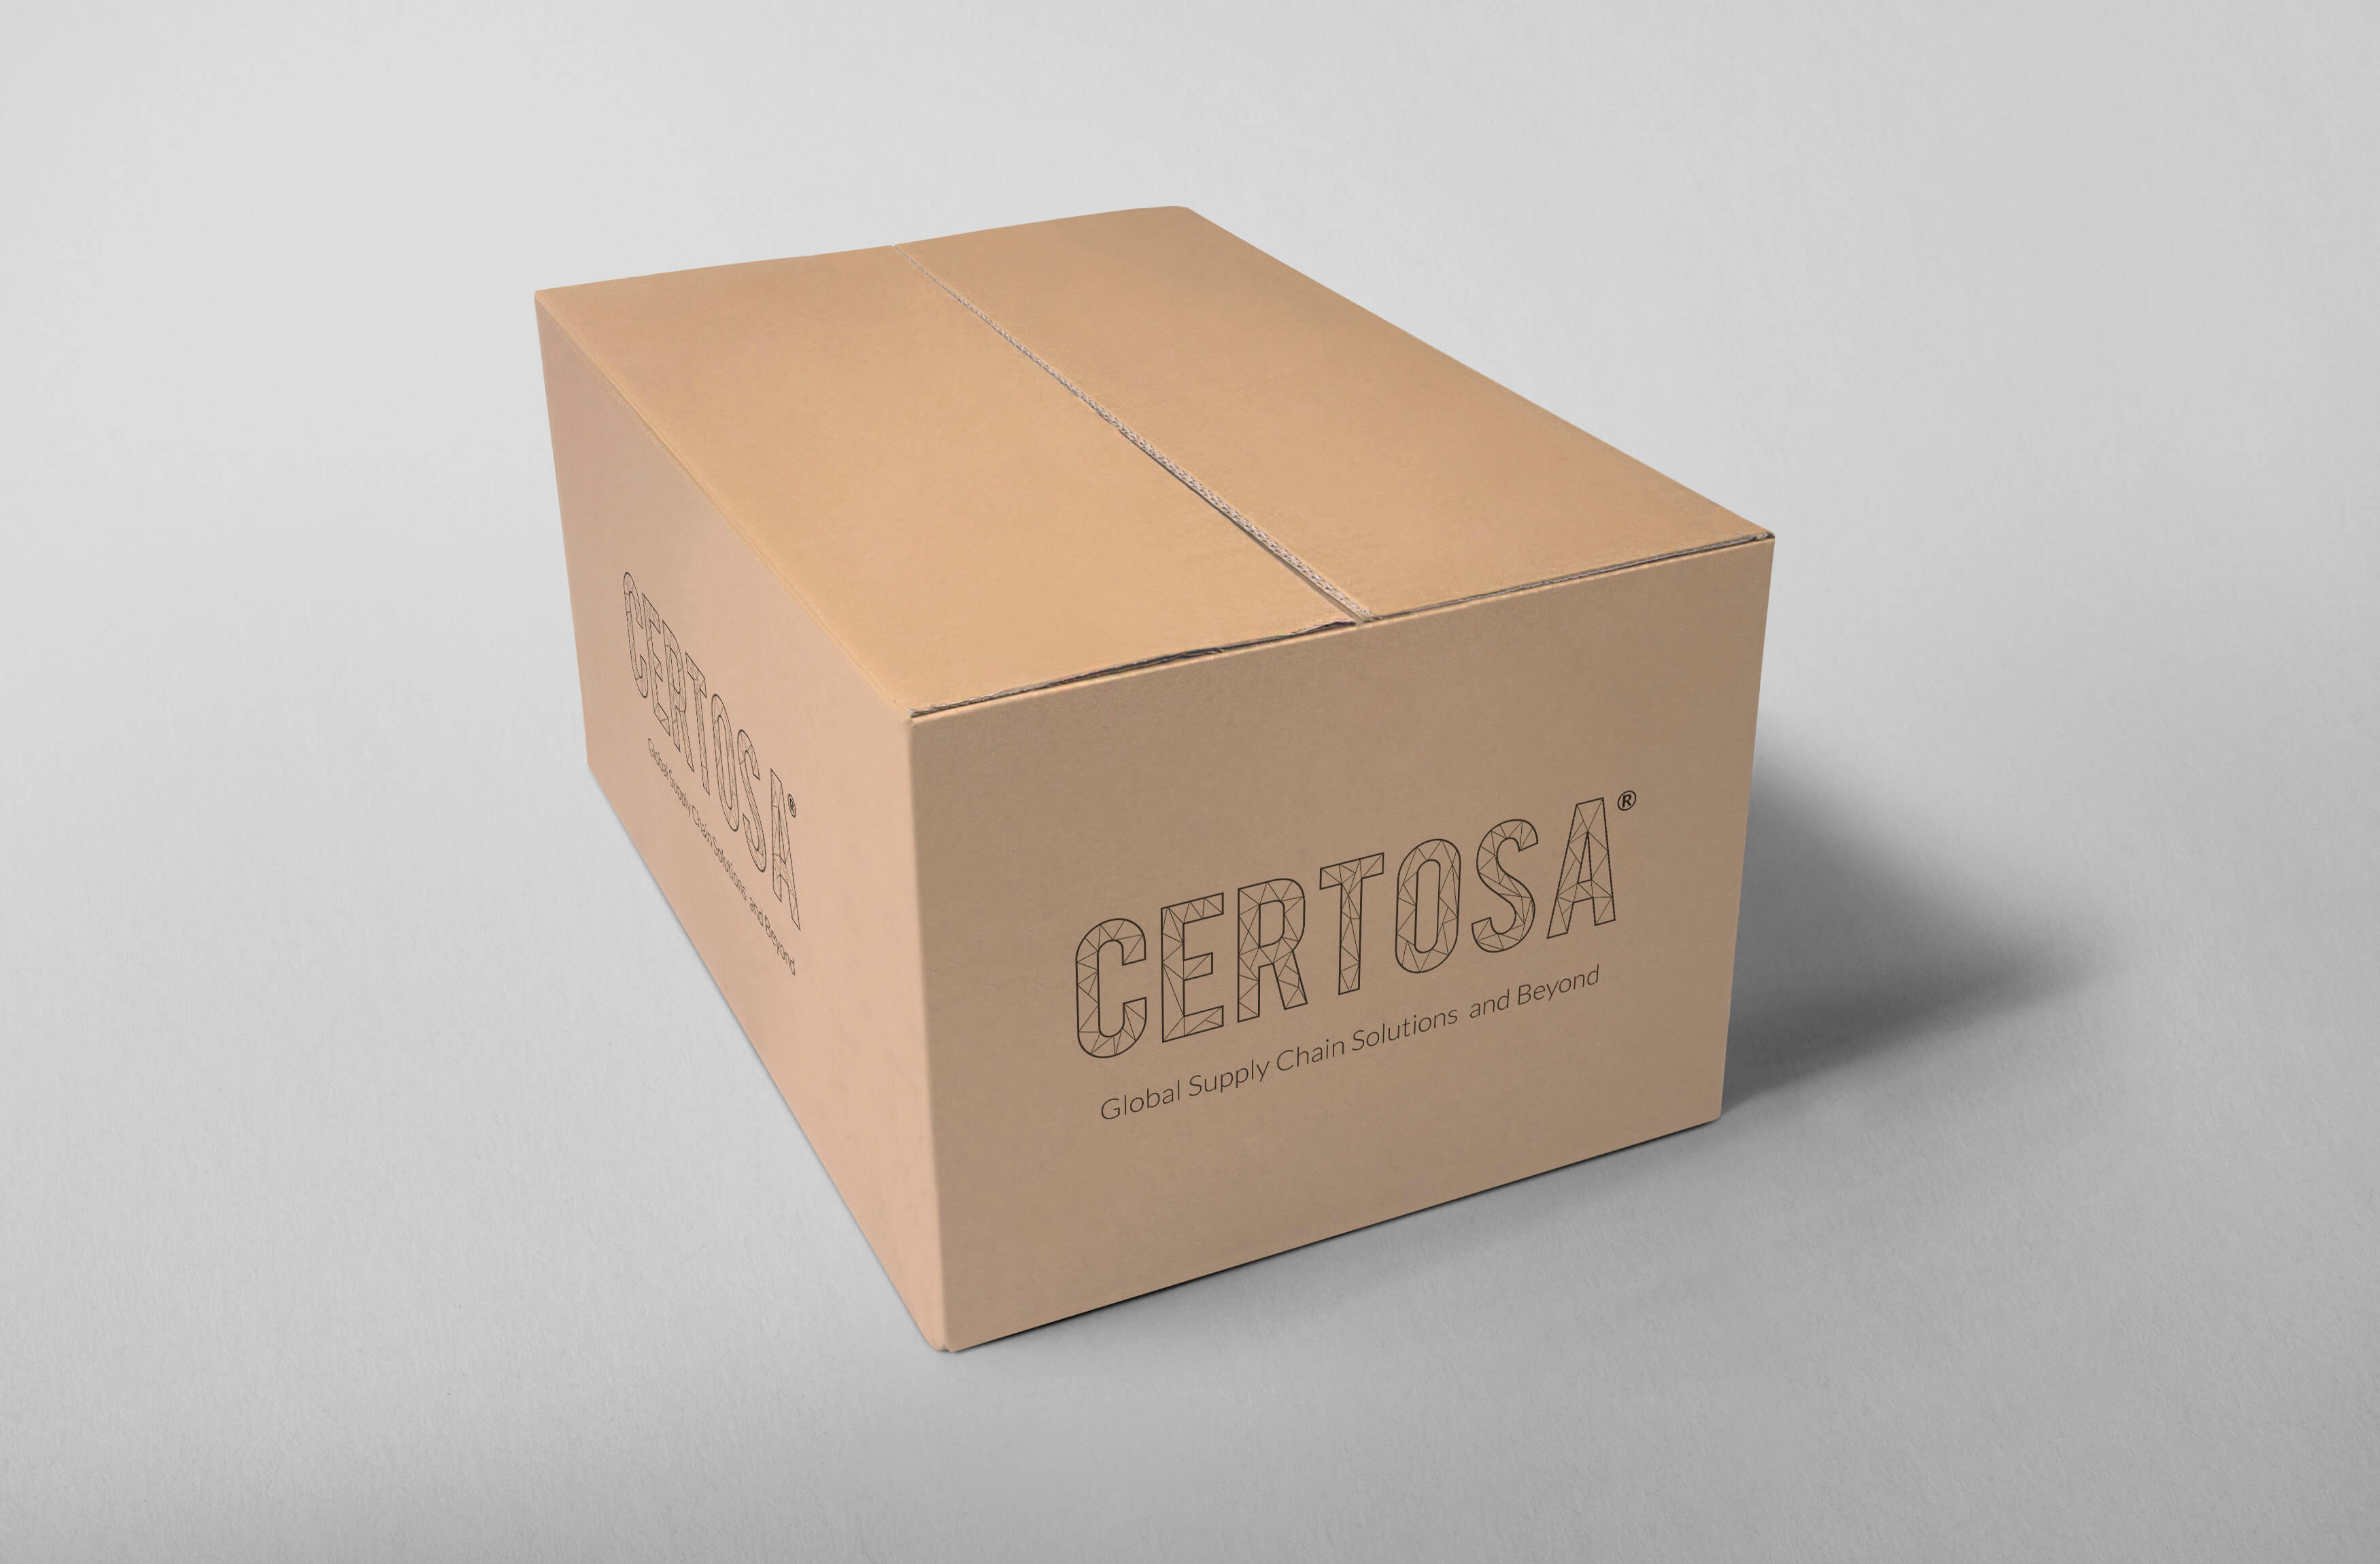 Certosa free-packaging-box-mockup-1 copy copy